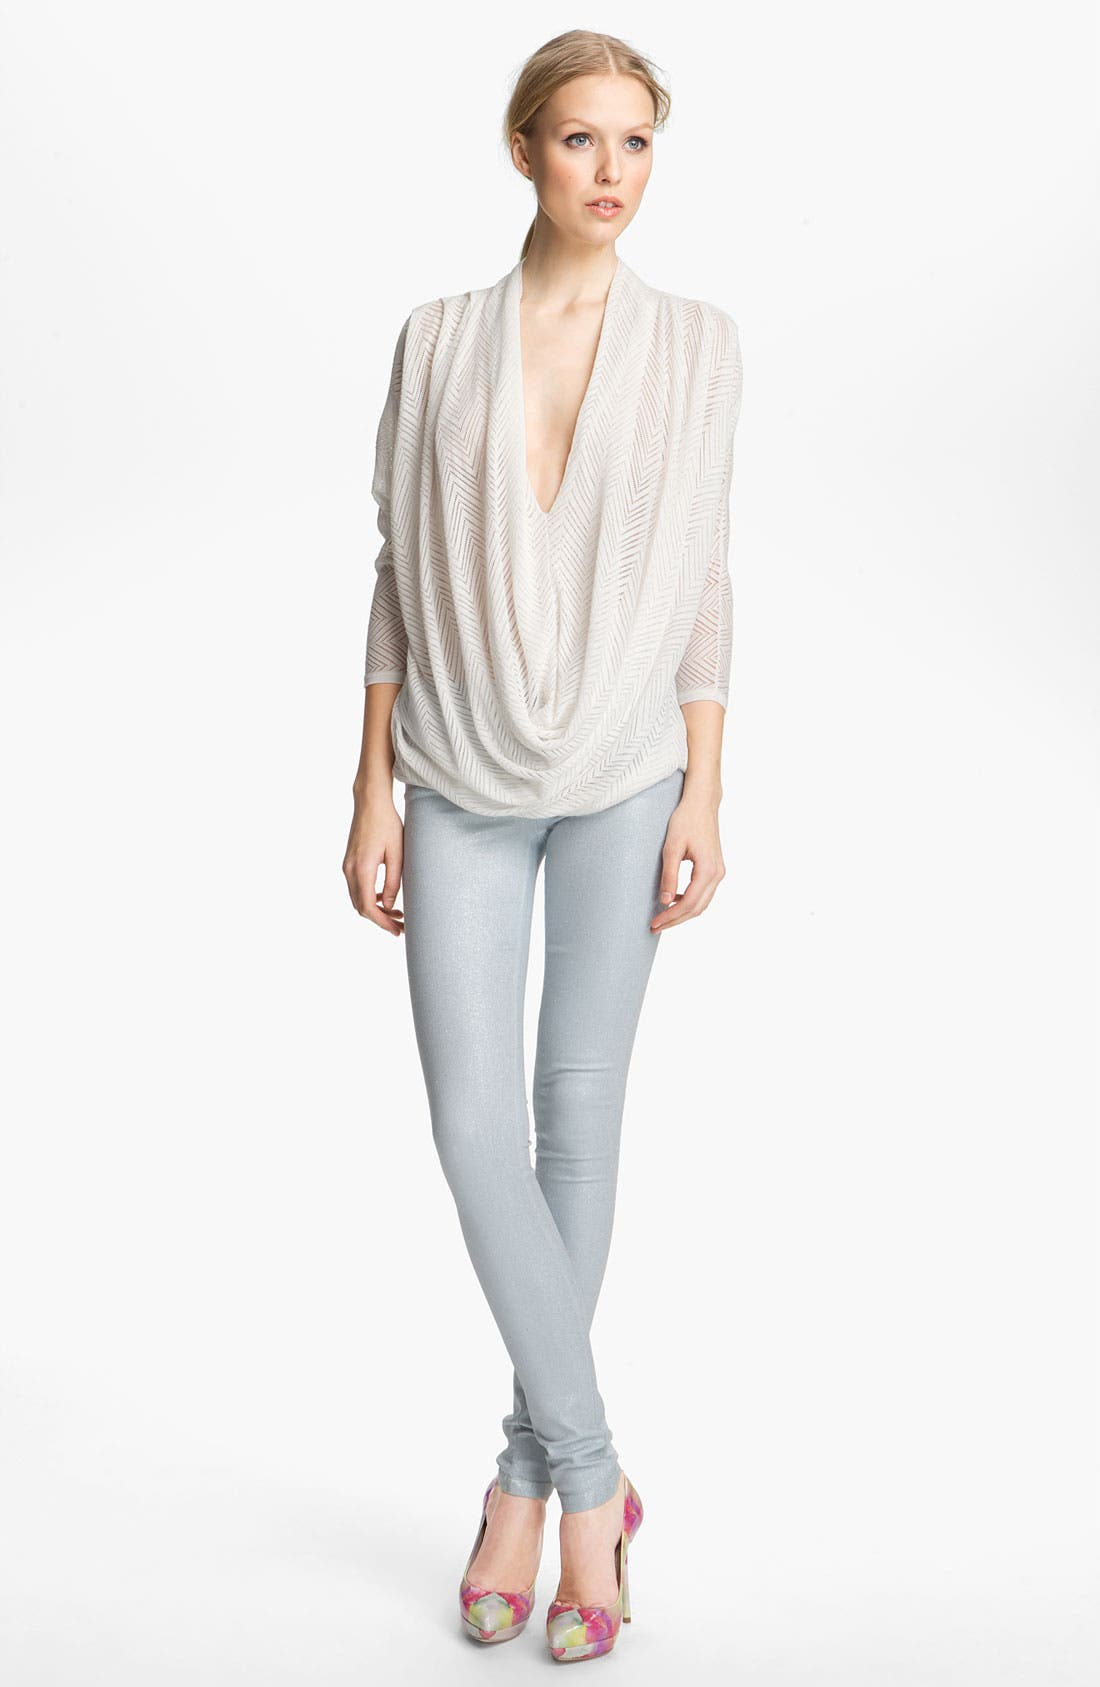 Alternate Image 1 Selected - Alice + Olivia Draped Chevron Knit Top